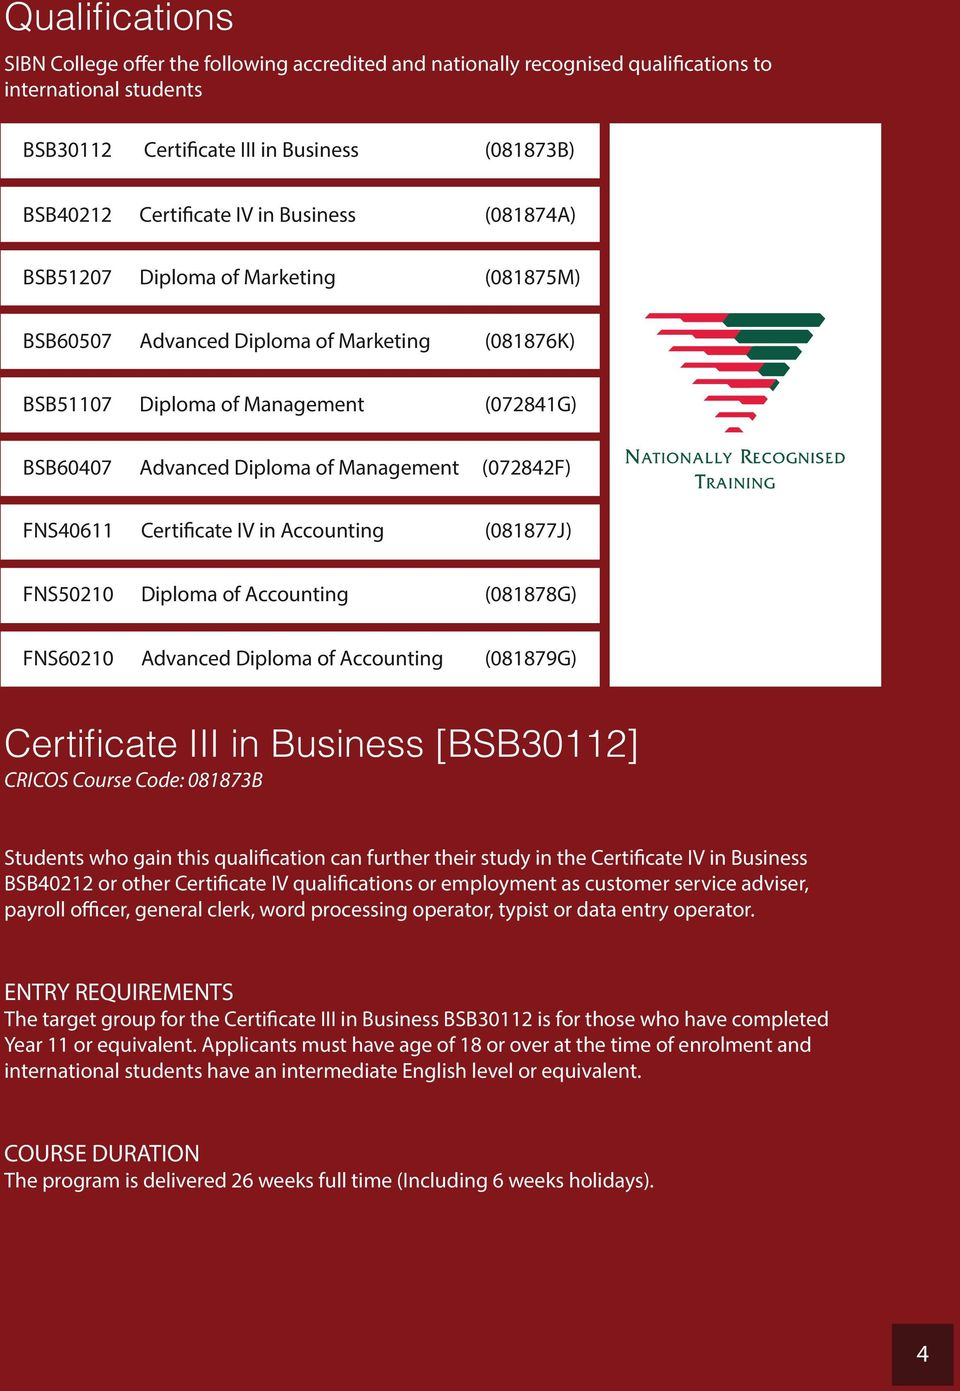 FNS40611 Certificate IV in Accounting (081877J) FNS50210 Diploma of Accounting (081878G) FNS60210 Advanced Diploma of Accounting (081879G) Certificate III in Business [BSB30112] CRICOS Course Code: